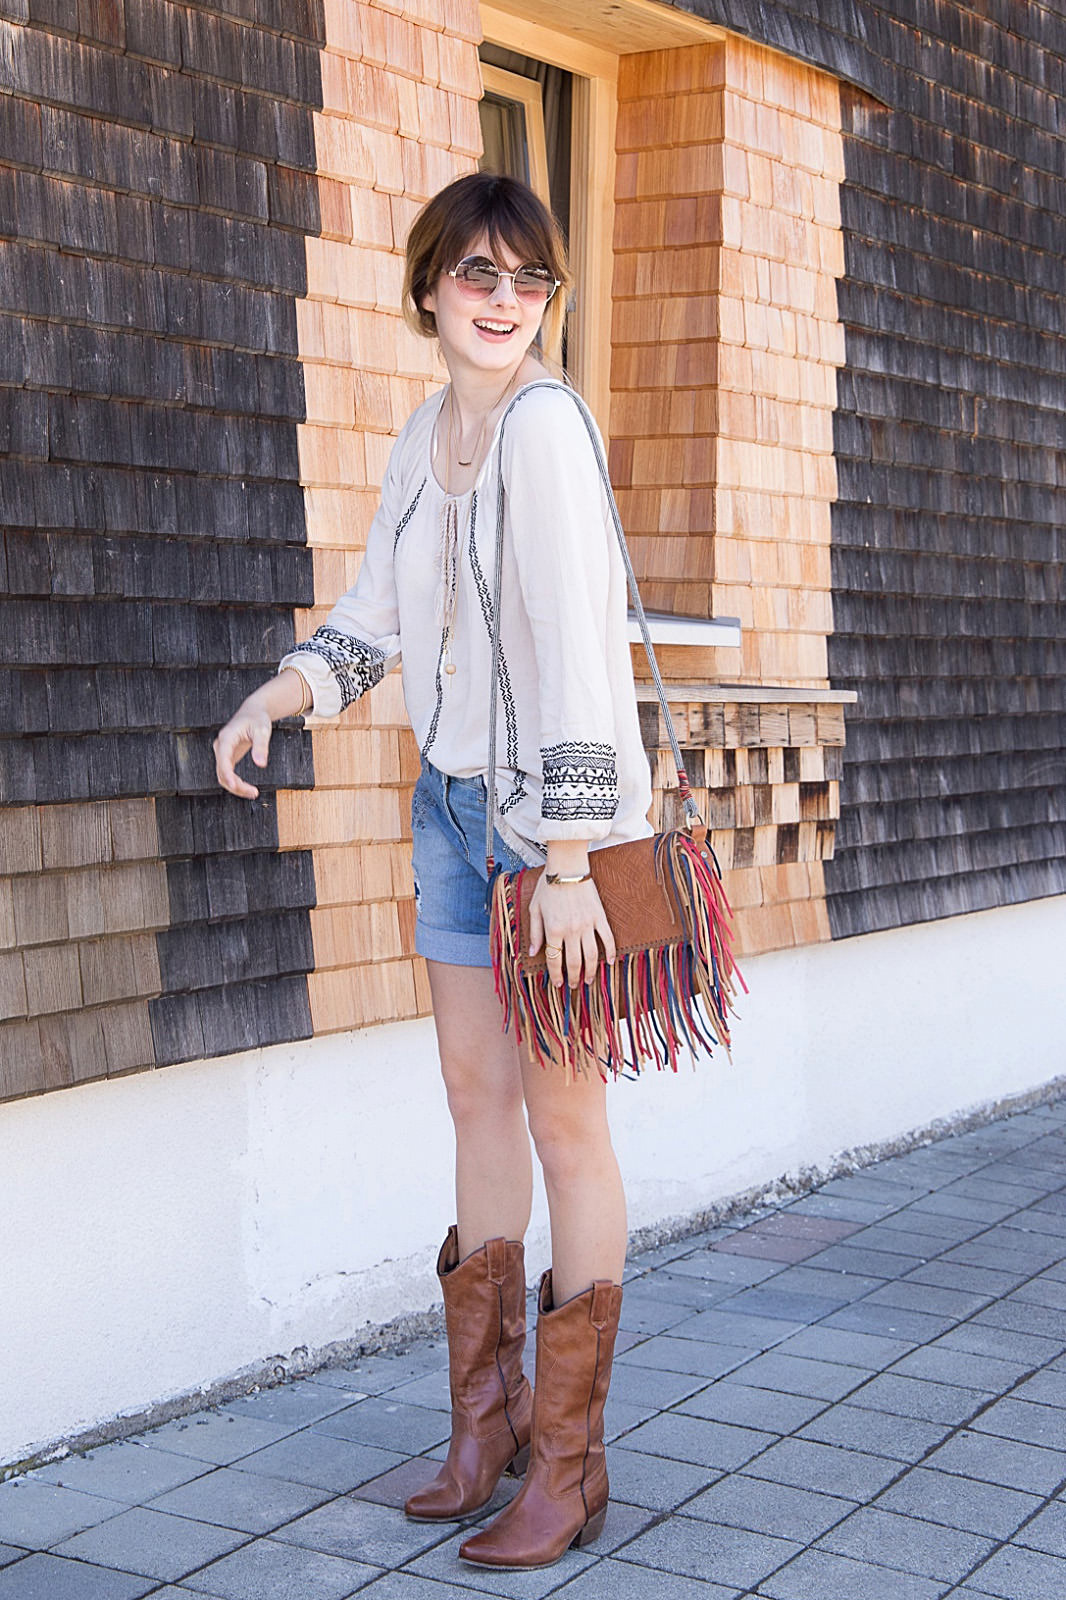 Happy Hippie: Boho-Outfit mit Shorts & Cowboy Boots